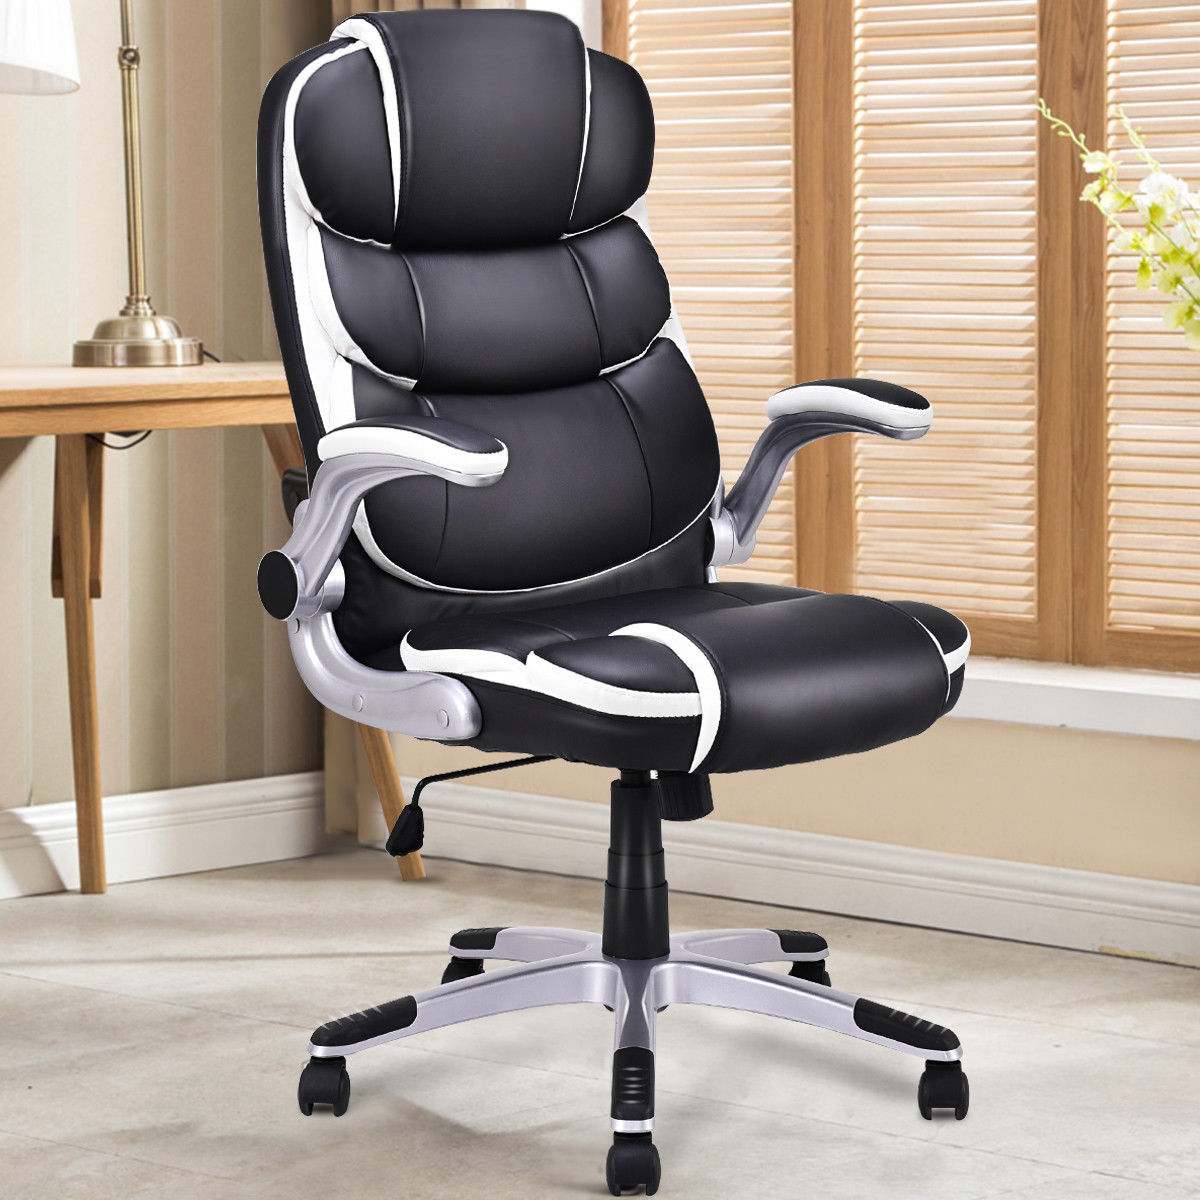 PU Leather High Back Executive Office Chair Modern Swivel Desk Task Computer Gaming Chairs Ergonomic Furniture HW56602